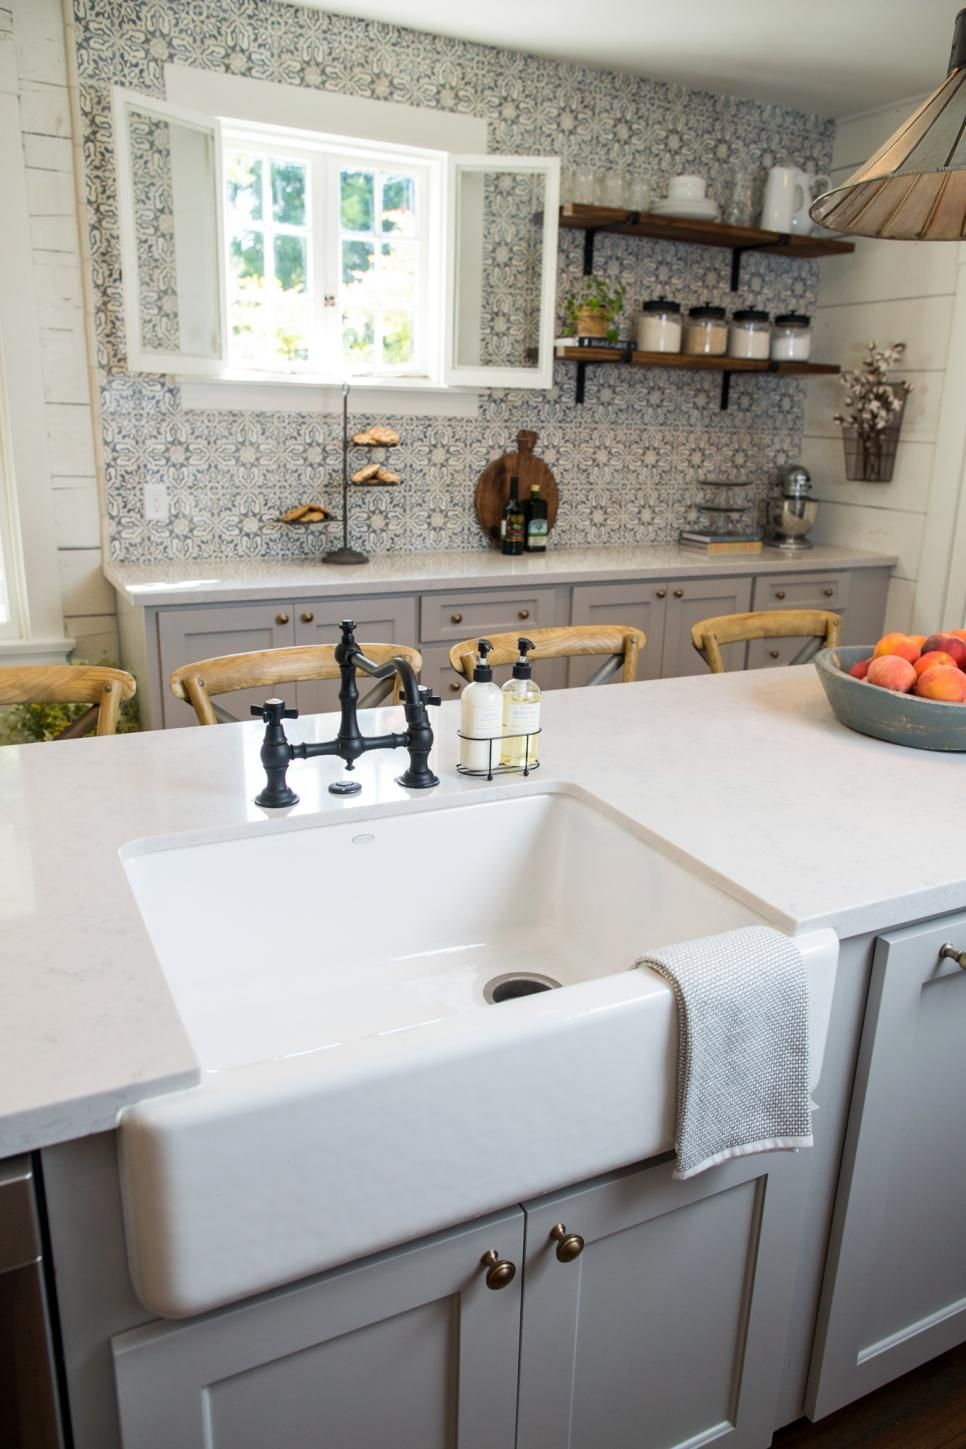 Fixer upper marble kitchen - Fixer Upper Makeover A Style Packed Small Space Love Love Love Everything About This Kitchen The Blue And White Tile Backsplash The Open Shelving